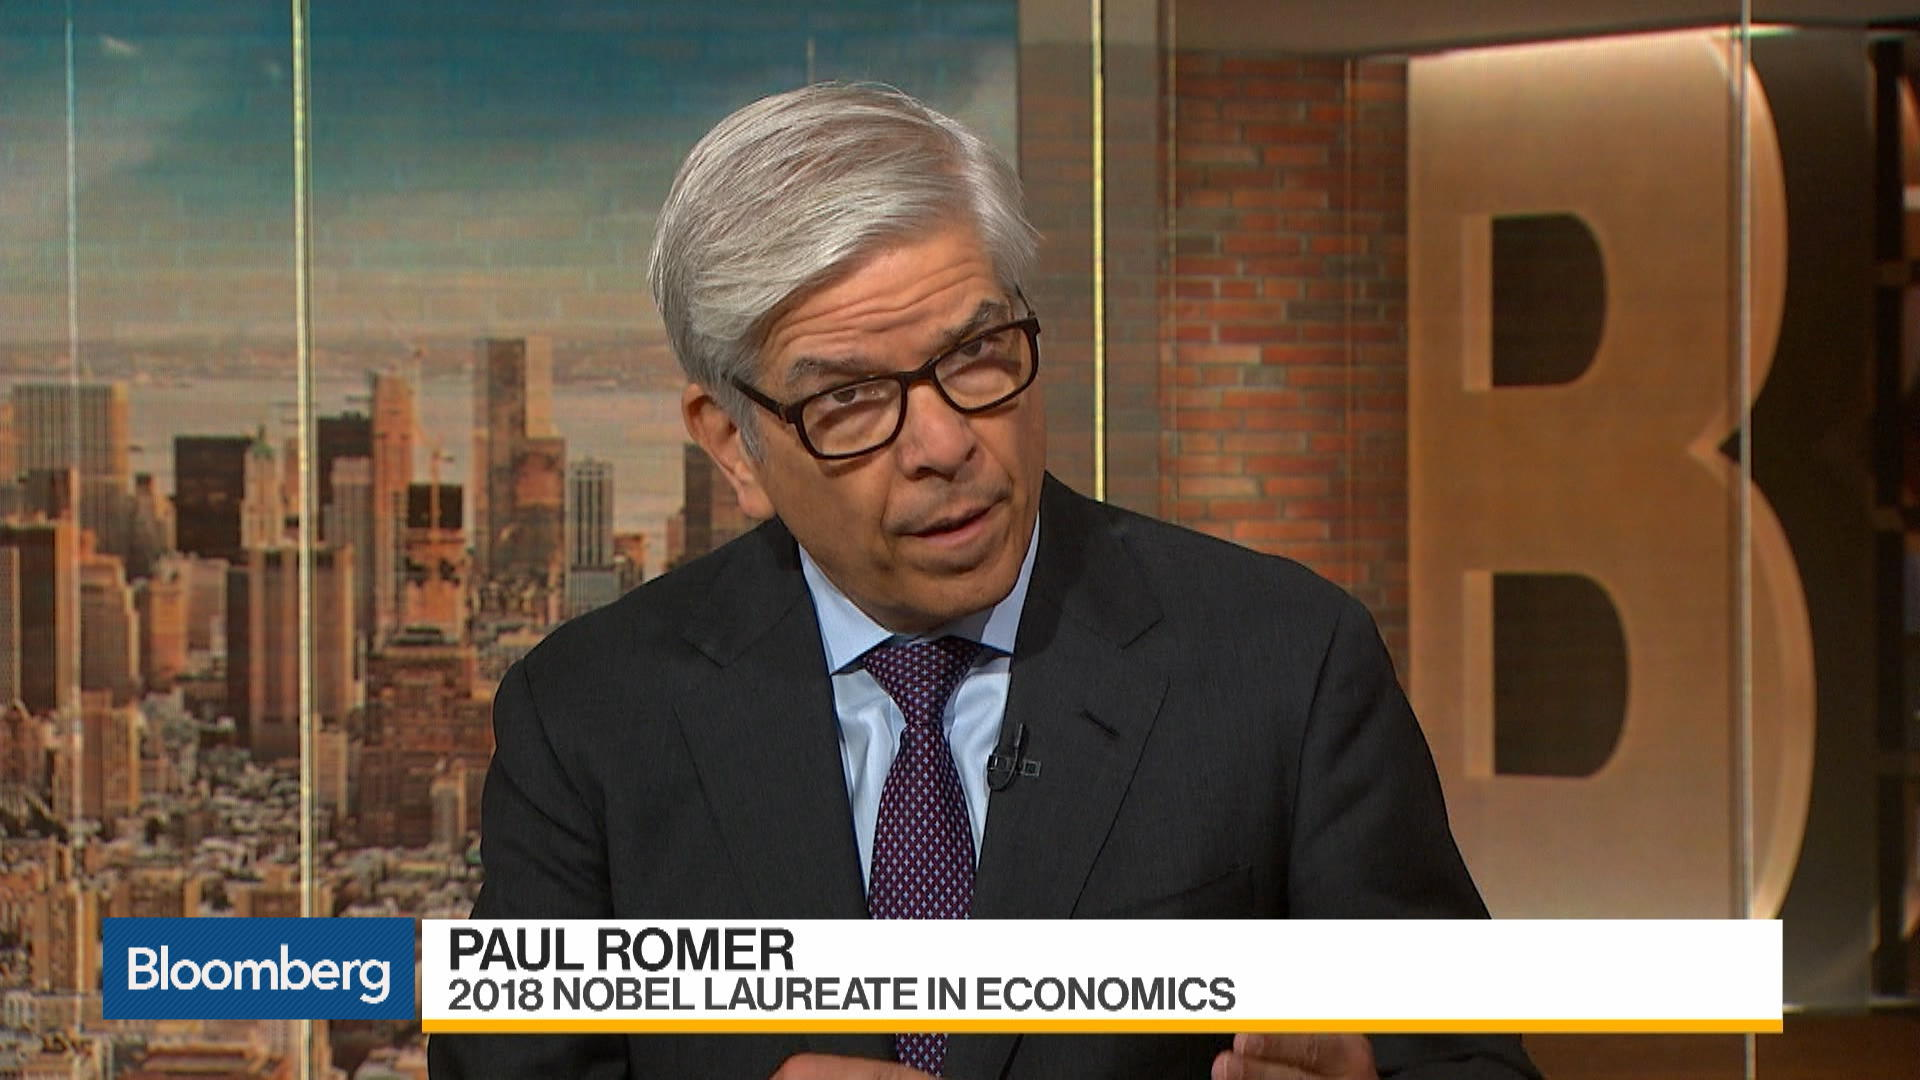 Romer: Entered New Phase of Contention in Trade